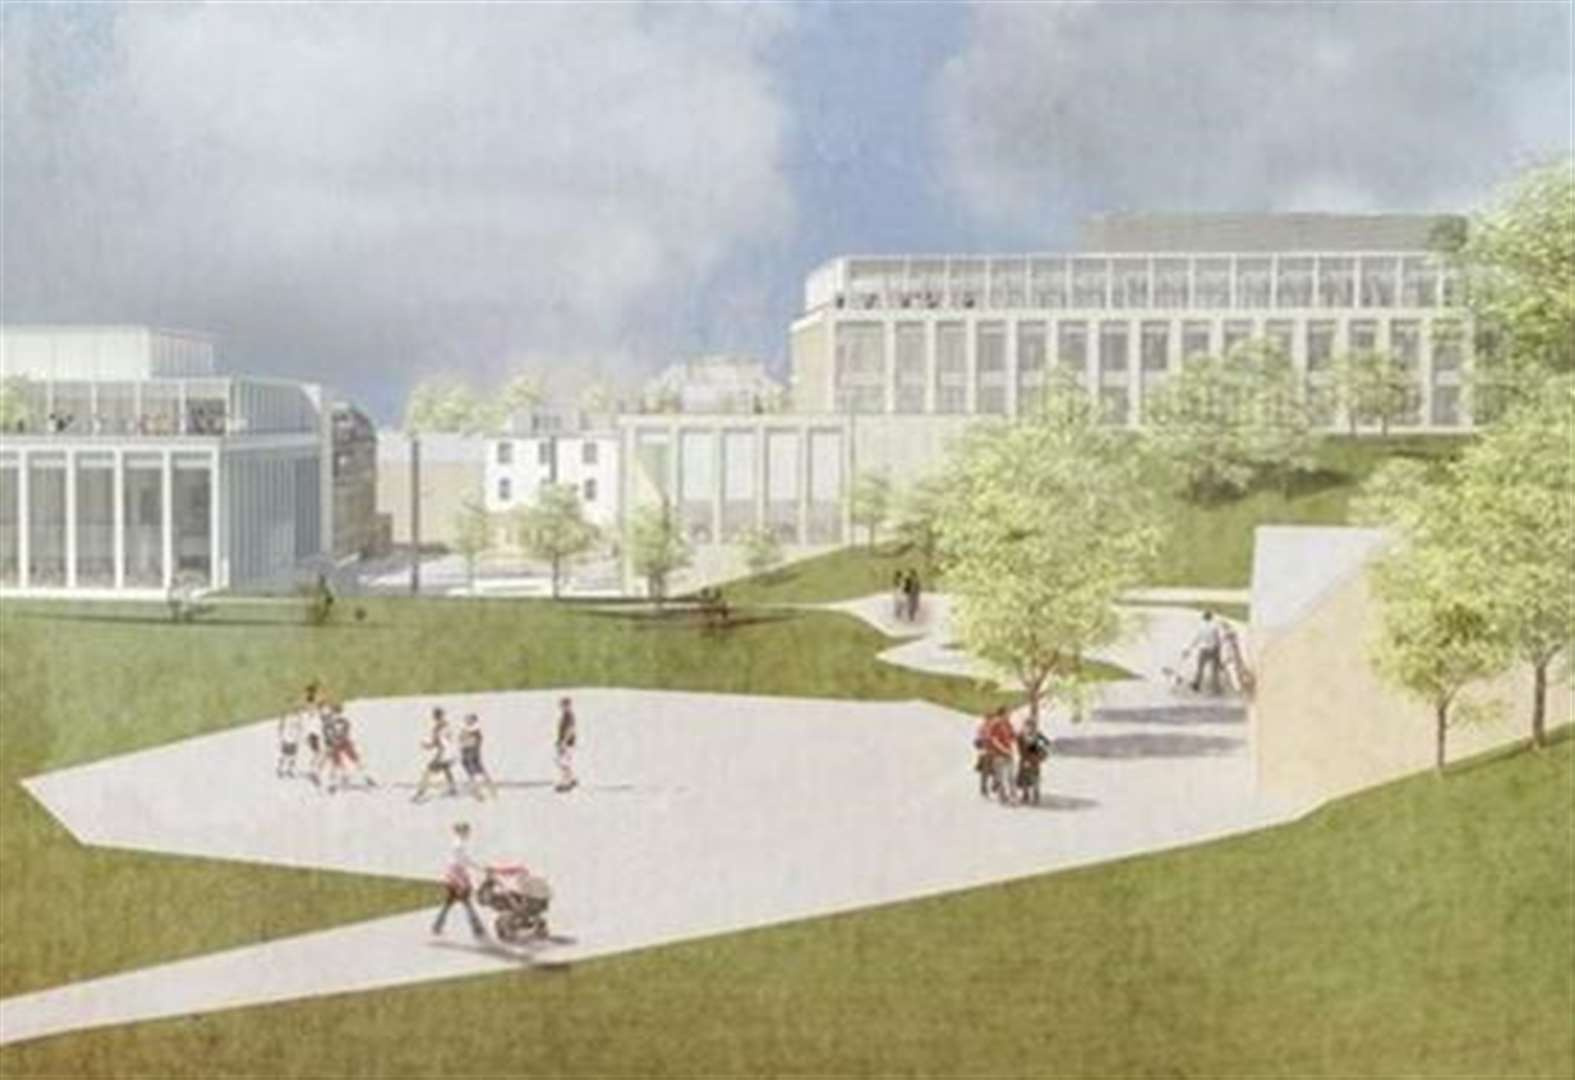 Inquiry into £90m project